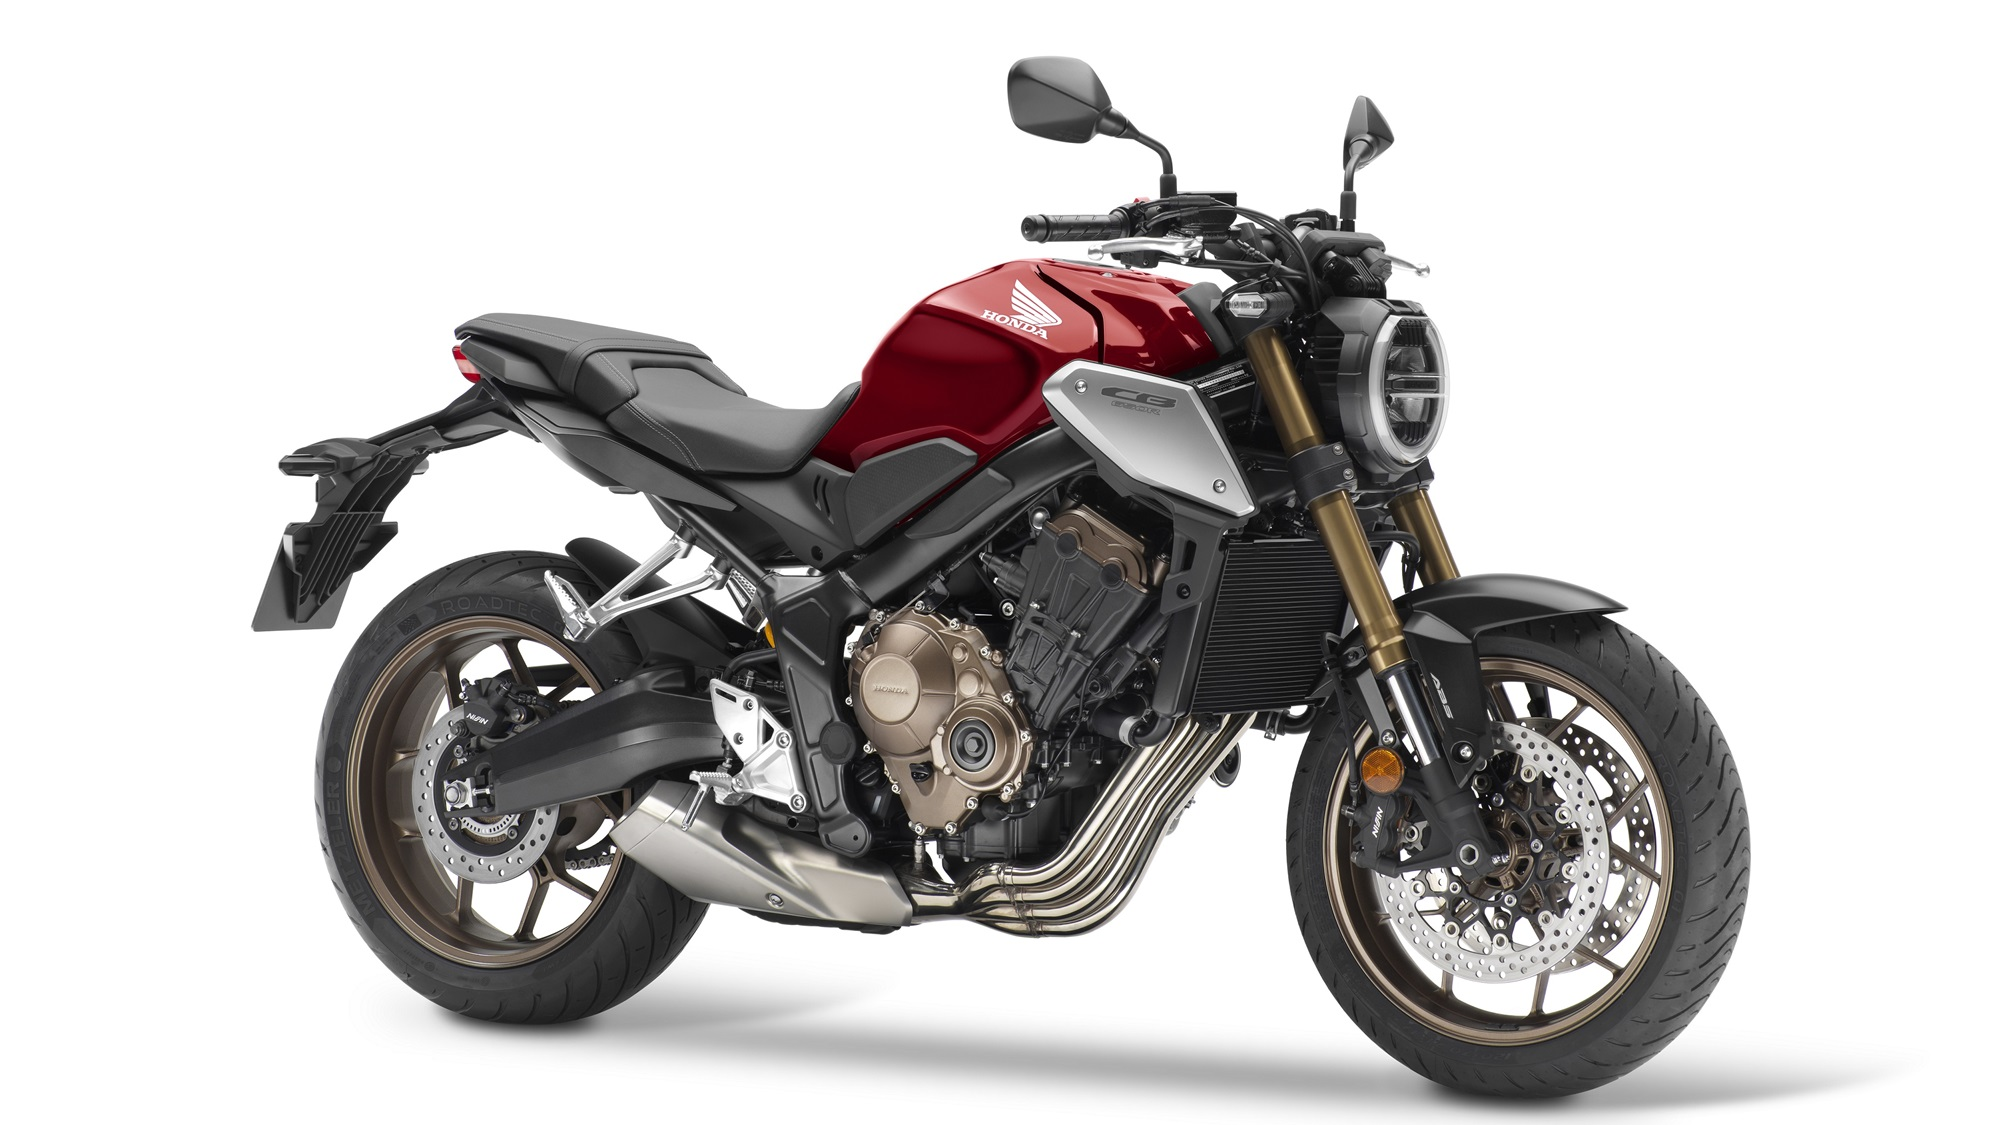 2021 Honda CB650R launched in India